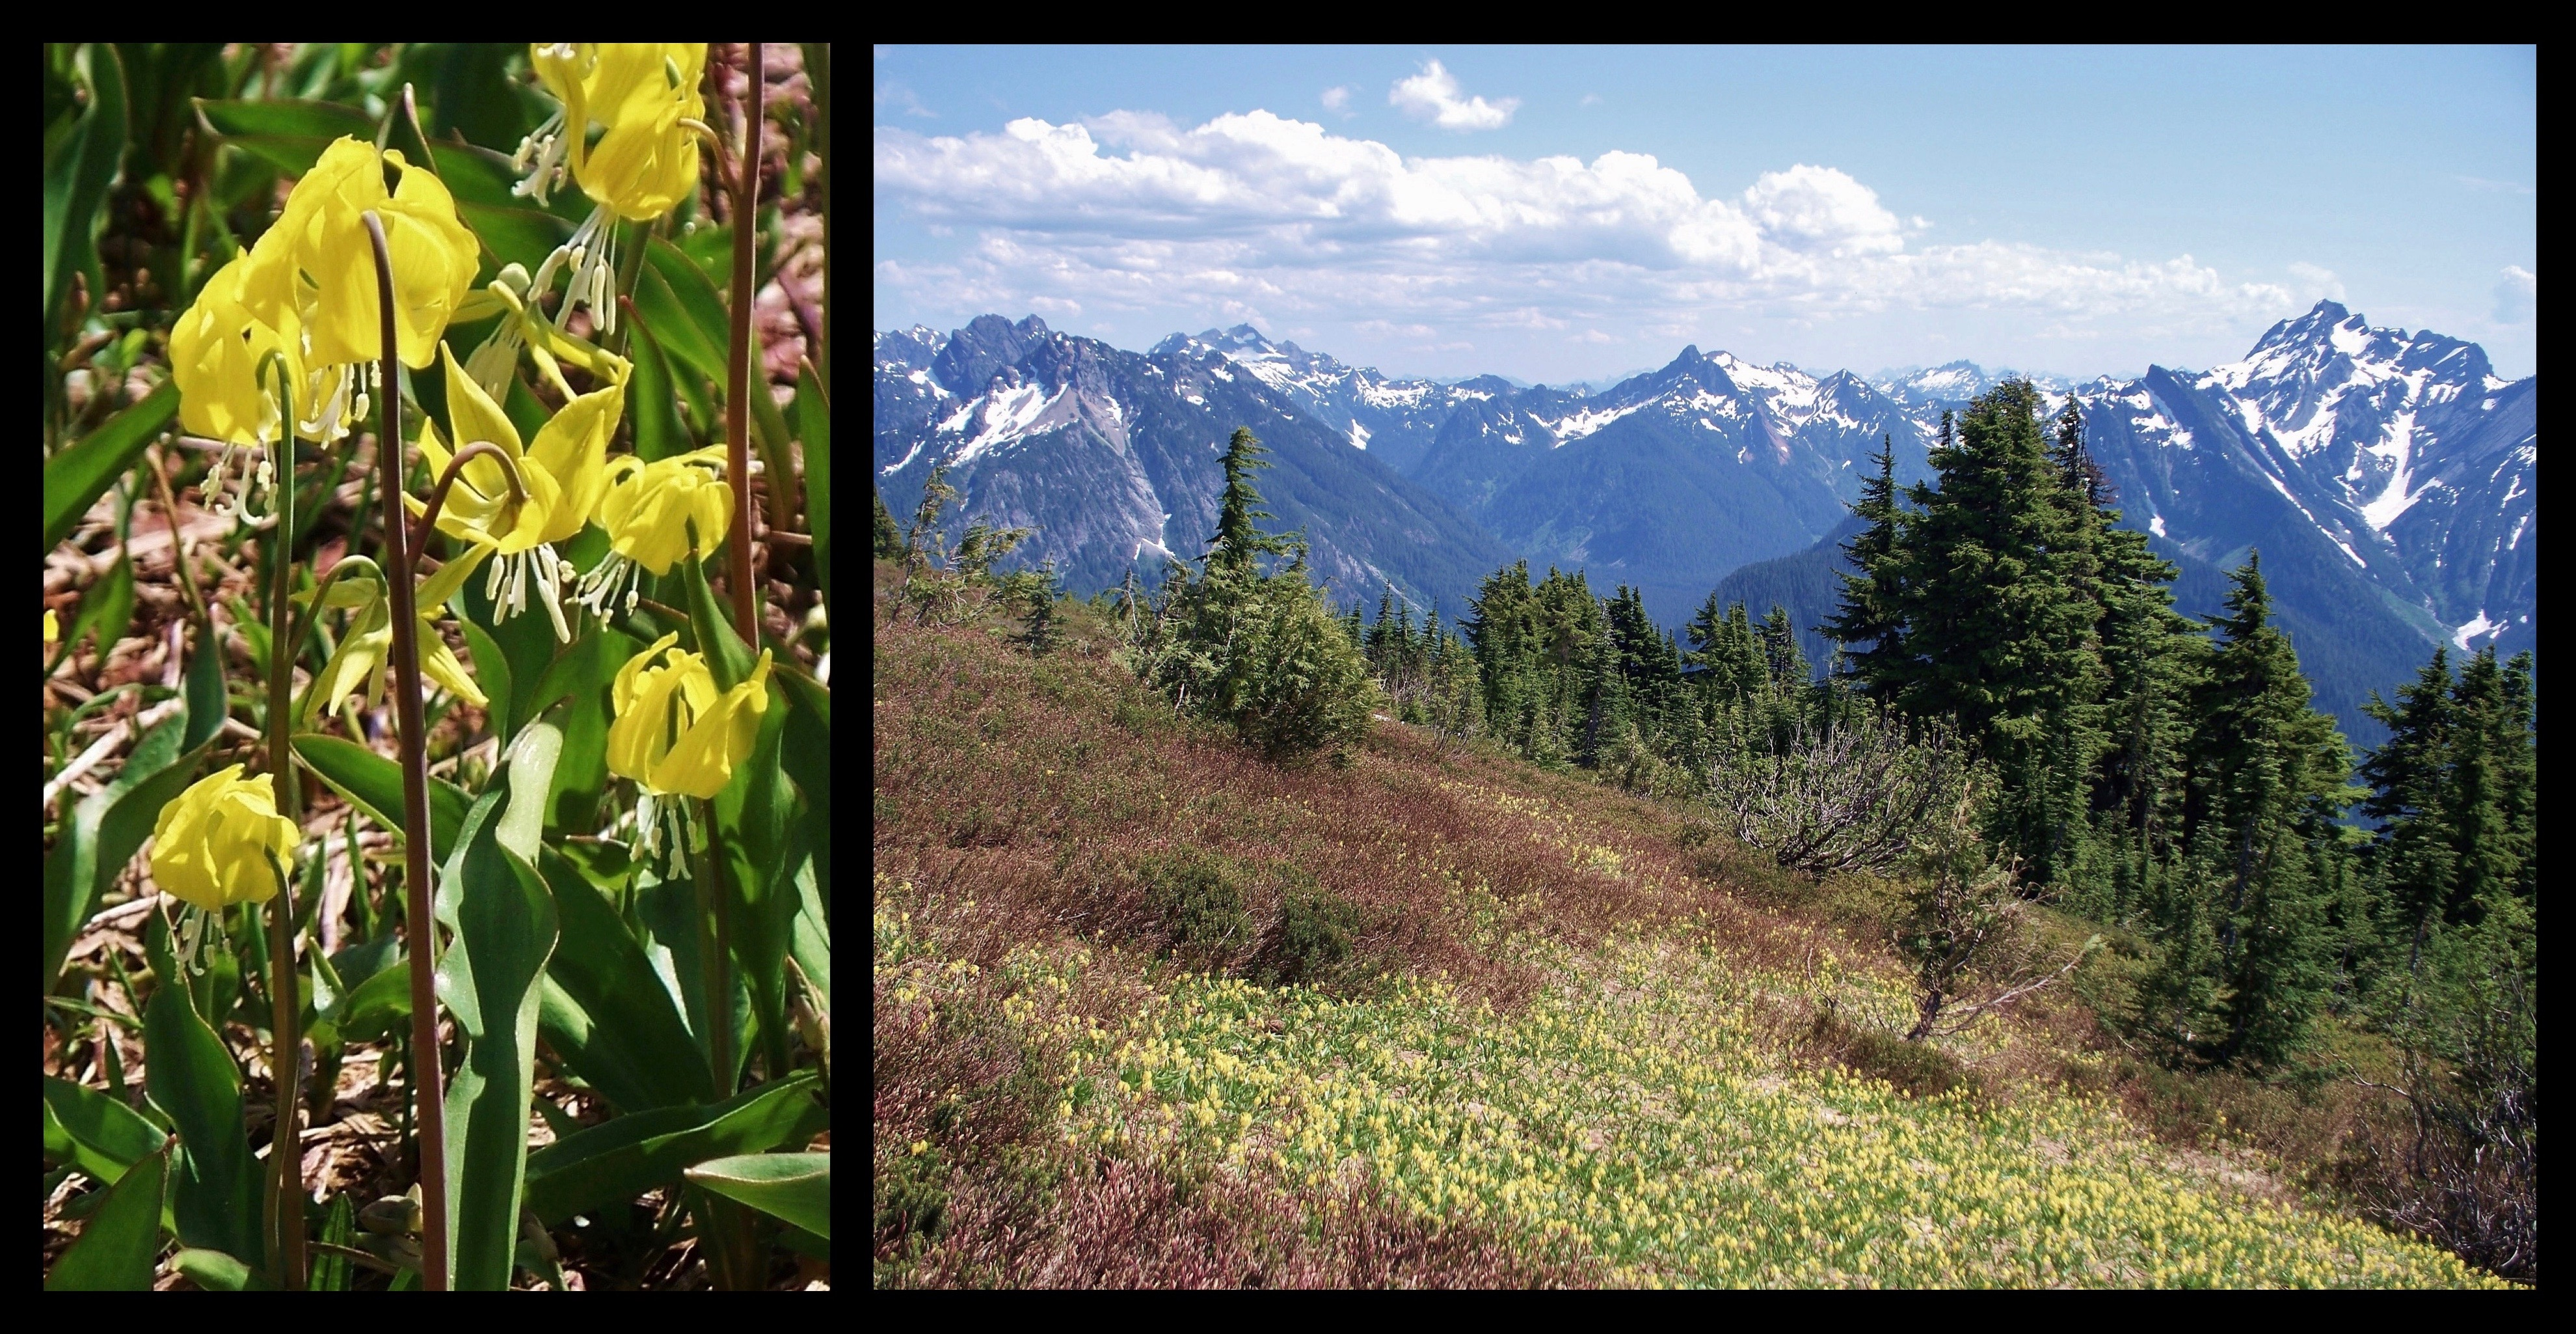 During the alpine spring, swathes of yellow avalanche-lilies (Erythronium grandiflorum) carpet the mountainside. Here, the Monte Cristos lie beyond the flower-clad meadow, including Silver Tip Peak in the center and Lewis and Del Campo peaks on the right. Mount Dickerman Trail, July 11, 2009.